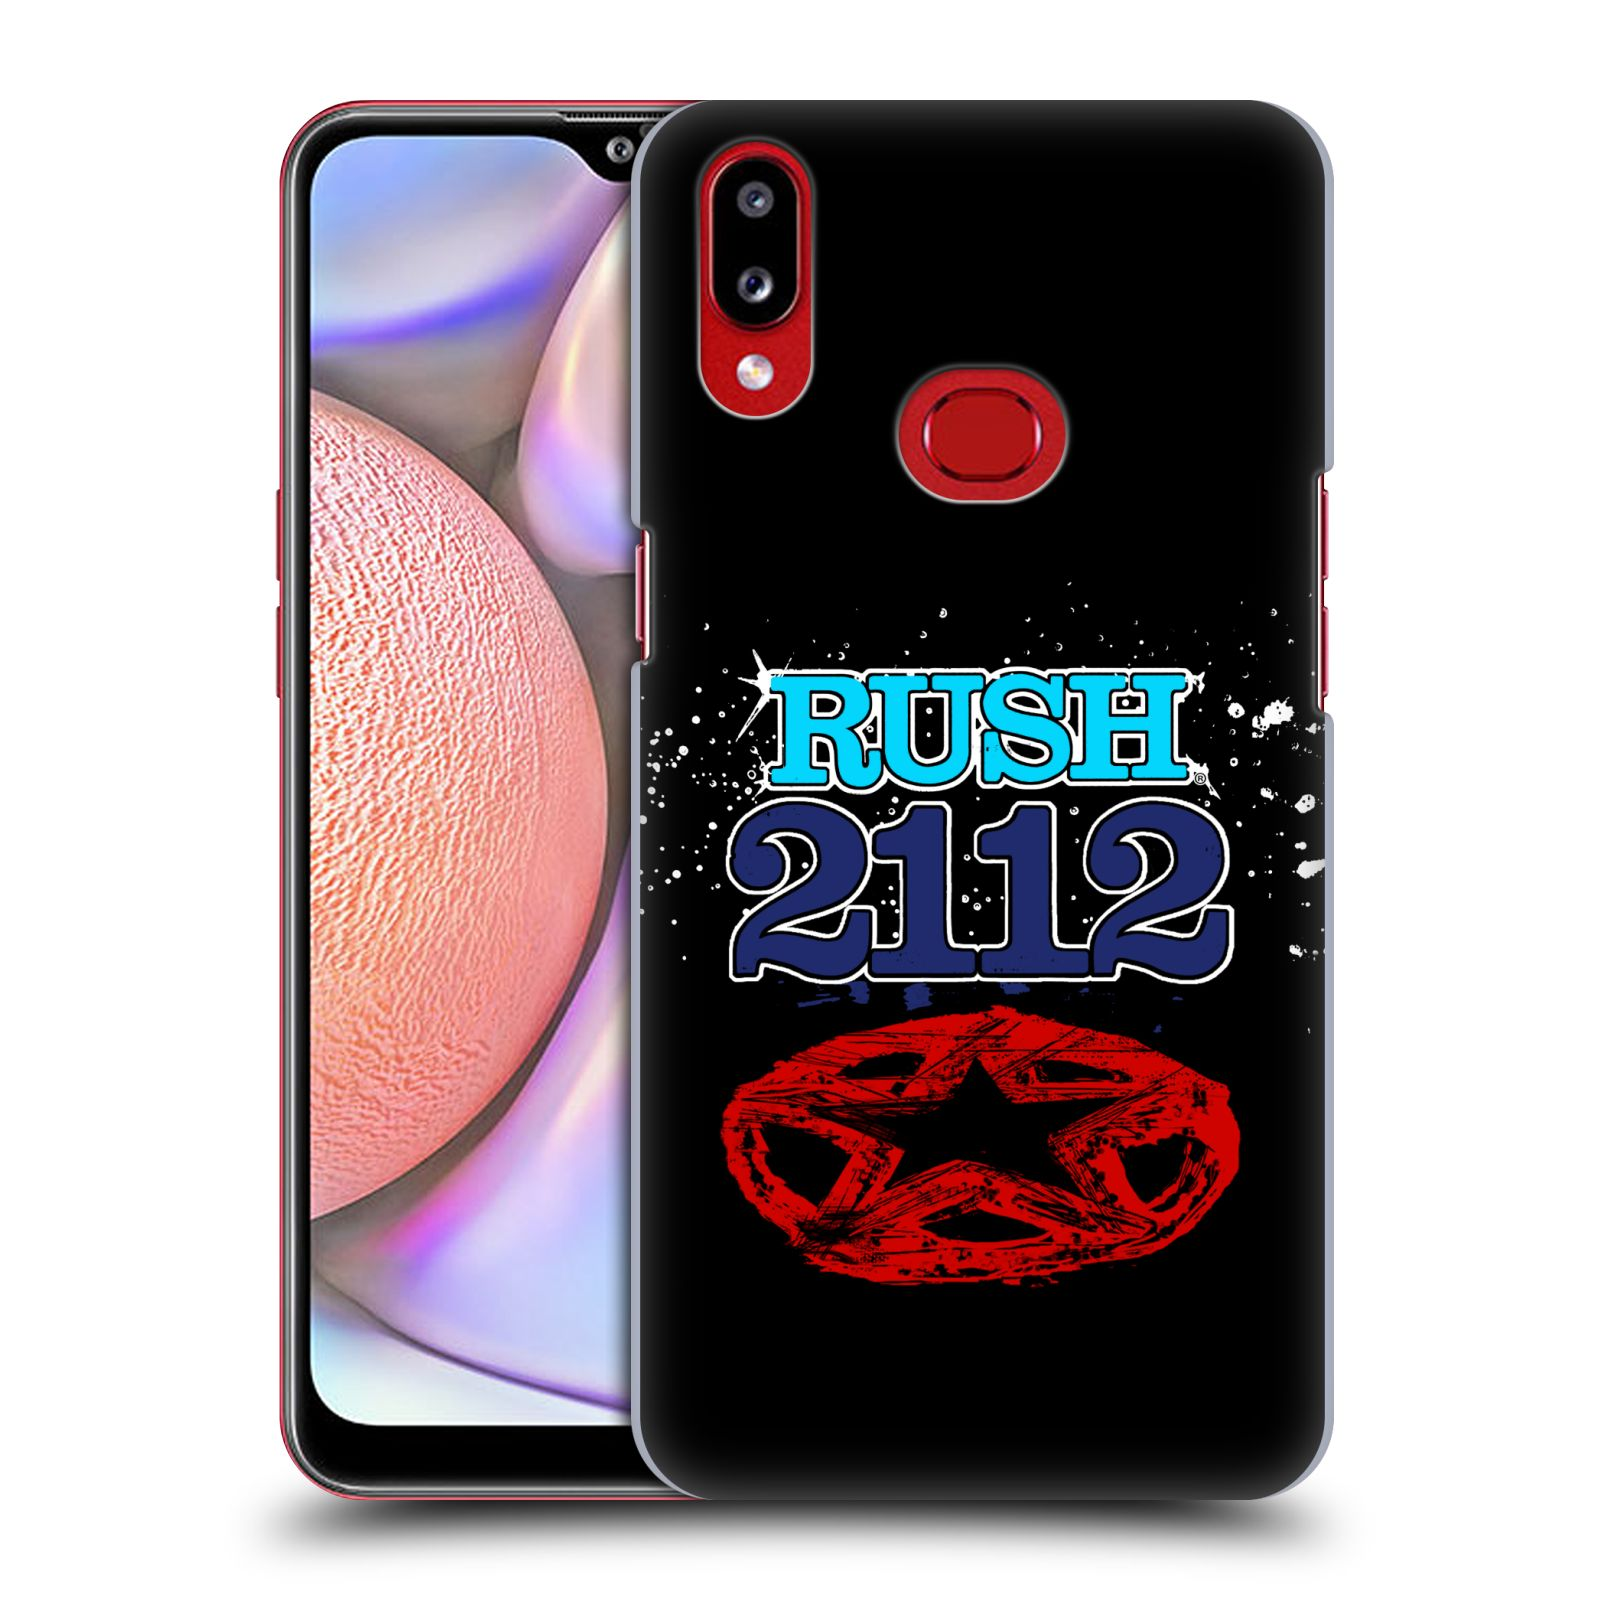 Official Rush Key Art 2112 Back Case for Samsung Galaxy A10s (2019)